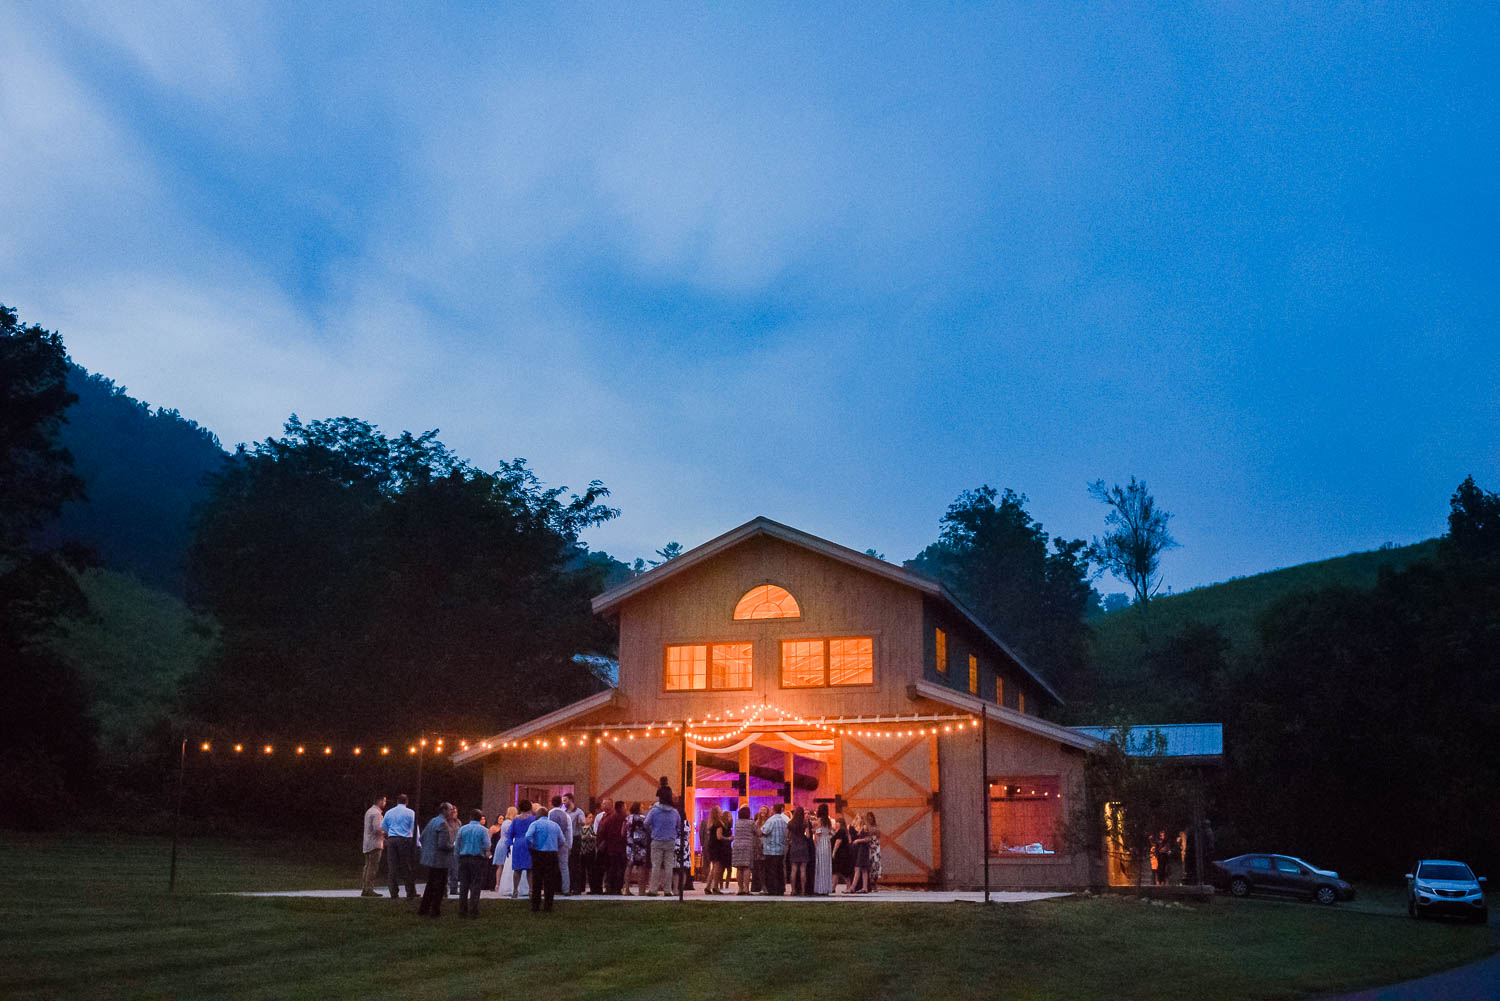 night time view of the venue at 4 Points Farm with a wedding reception in September.